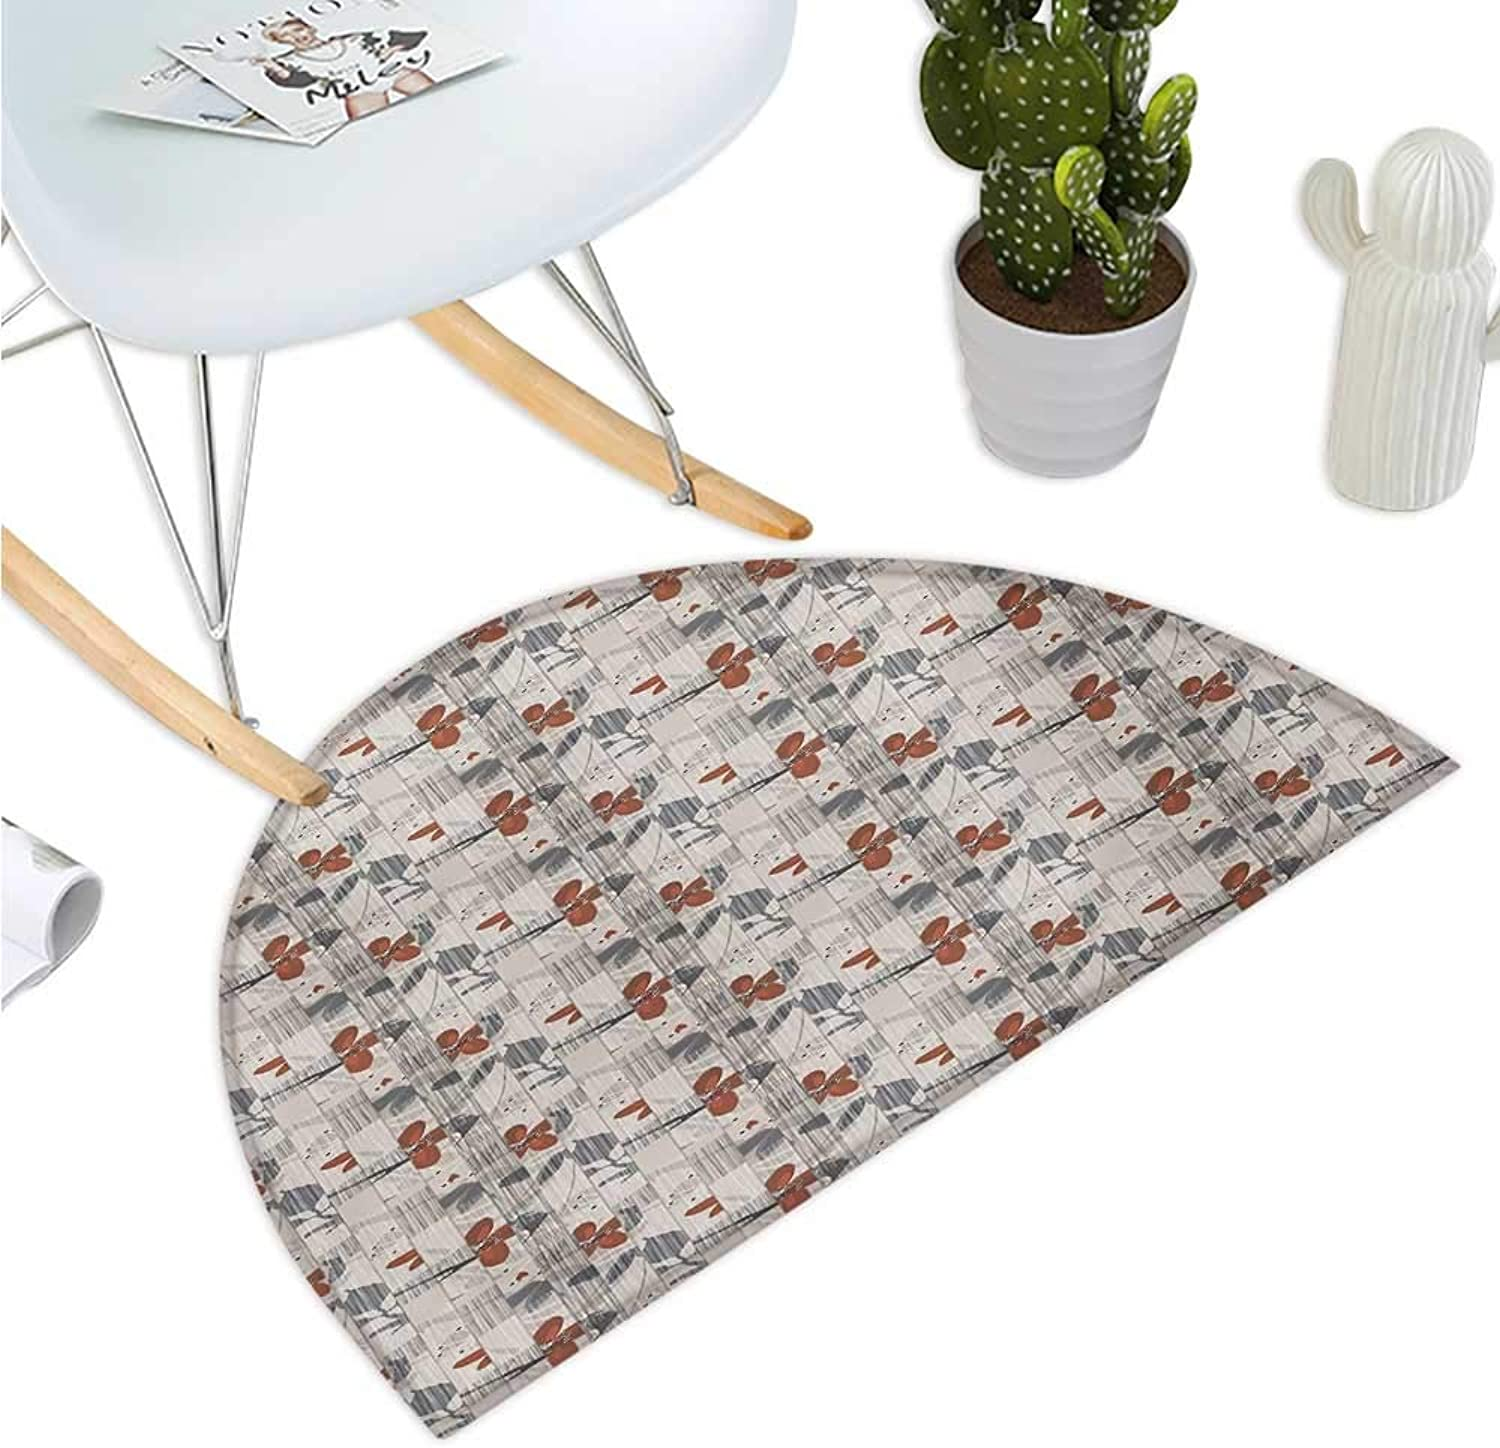 Abstract Semicircle Doormat Floral Composition with greenical Lines Romantic Blooming Spring Season Plants Entry Door Mat H 35.4  xD 53.1  Dark Taupe Ruby